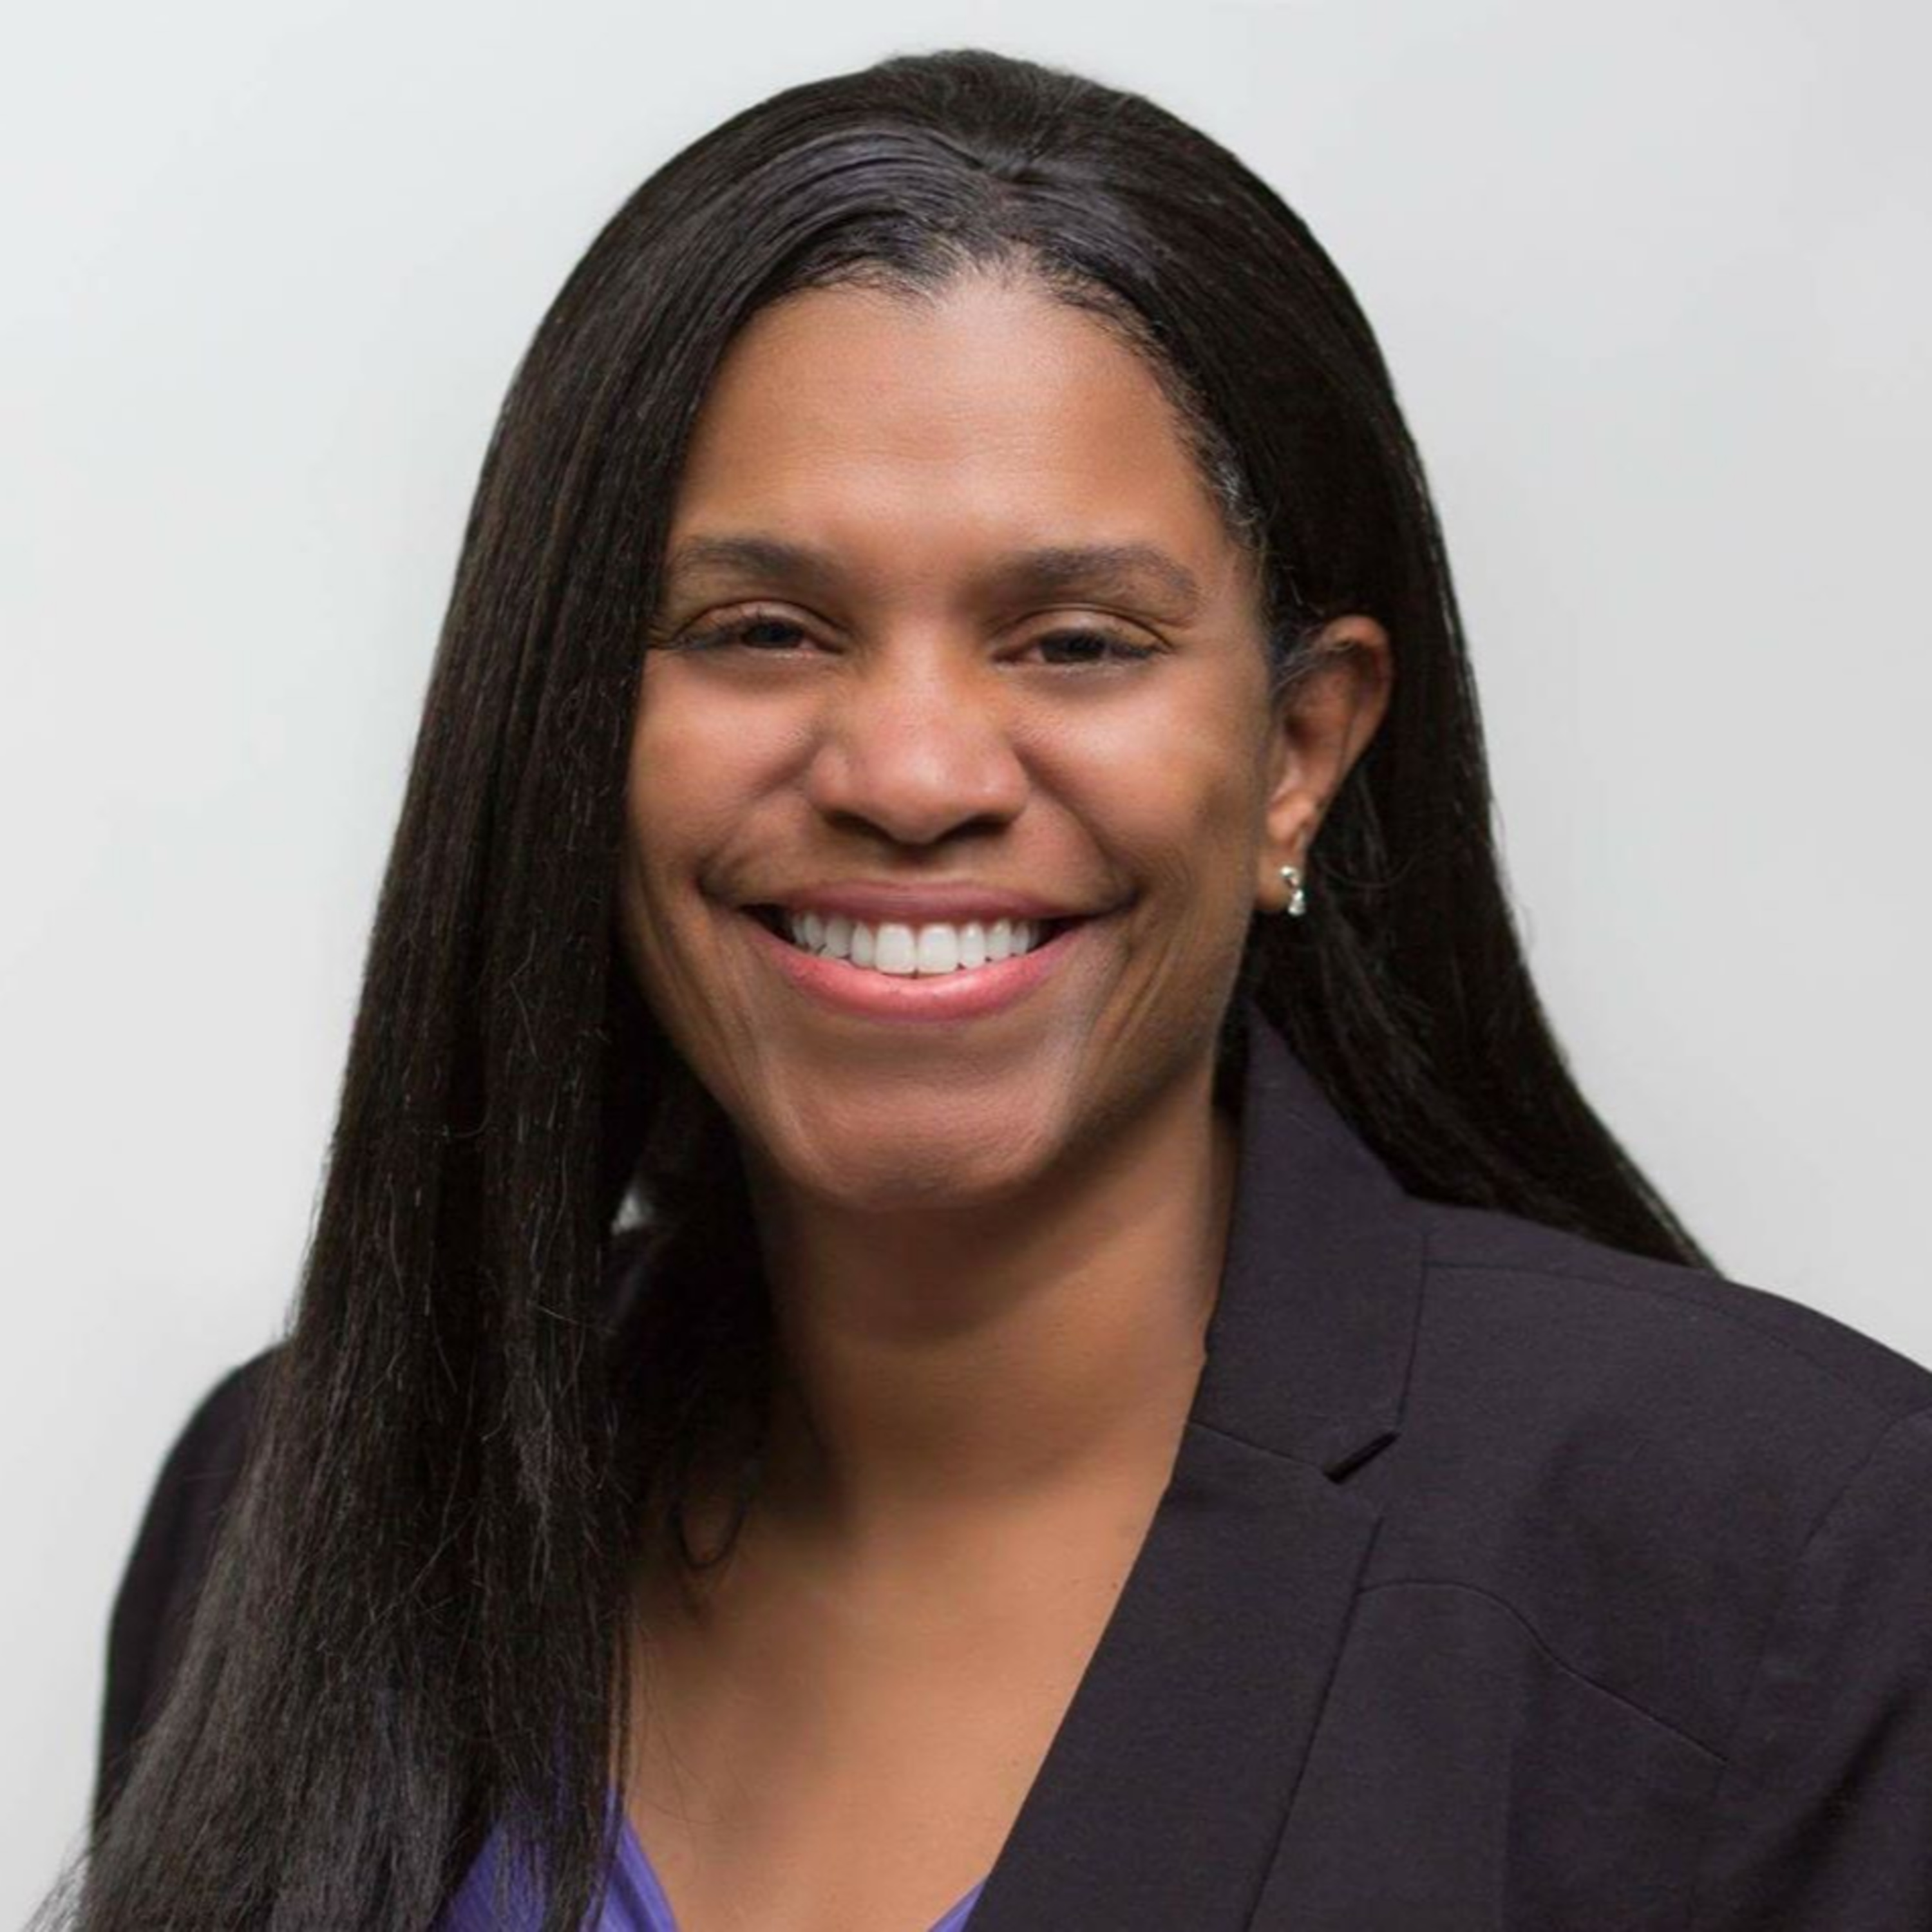 Mental Health Download: Exploring Mental Illness, Suicide, Homelessness and Incarceration - City Councilor Onreka Johnson on the Lawton Mental Health Town Hall